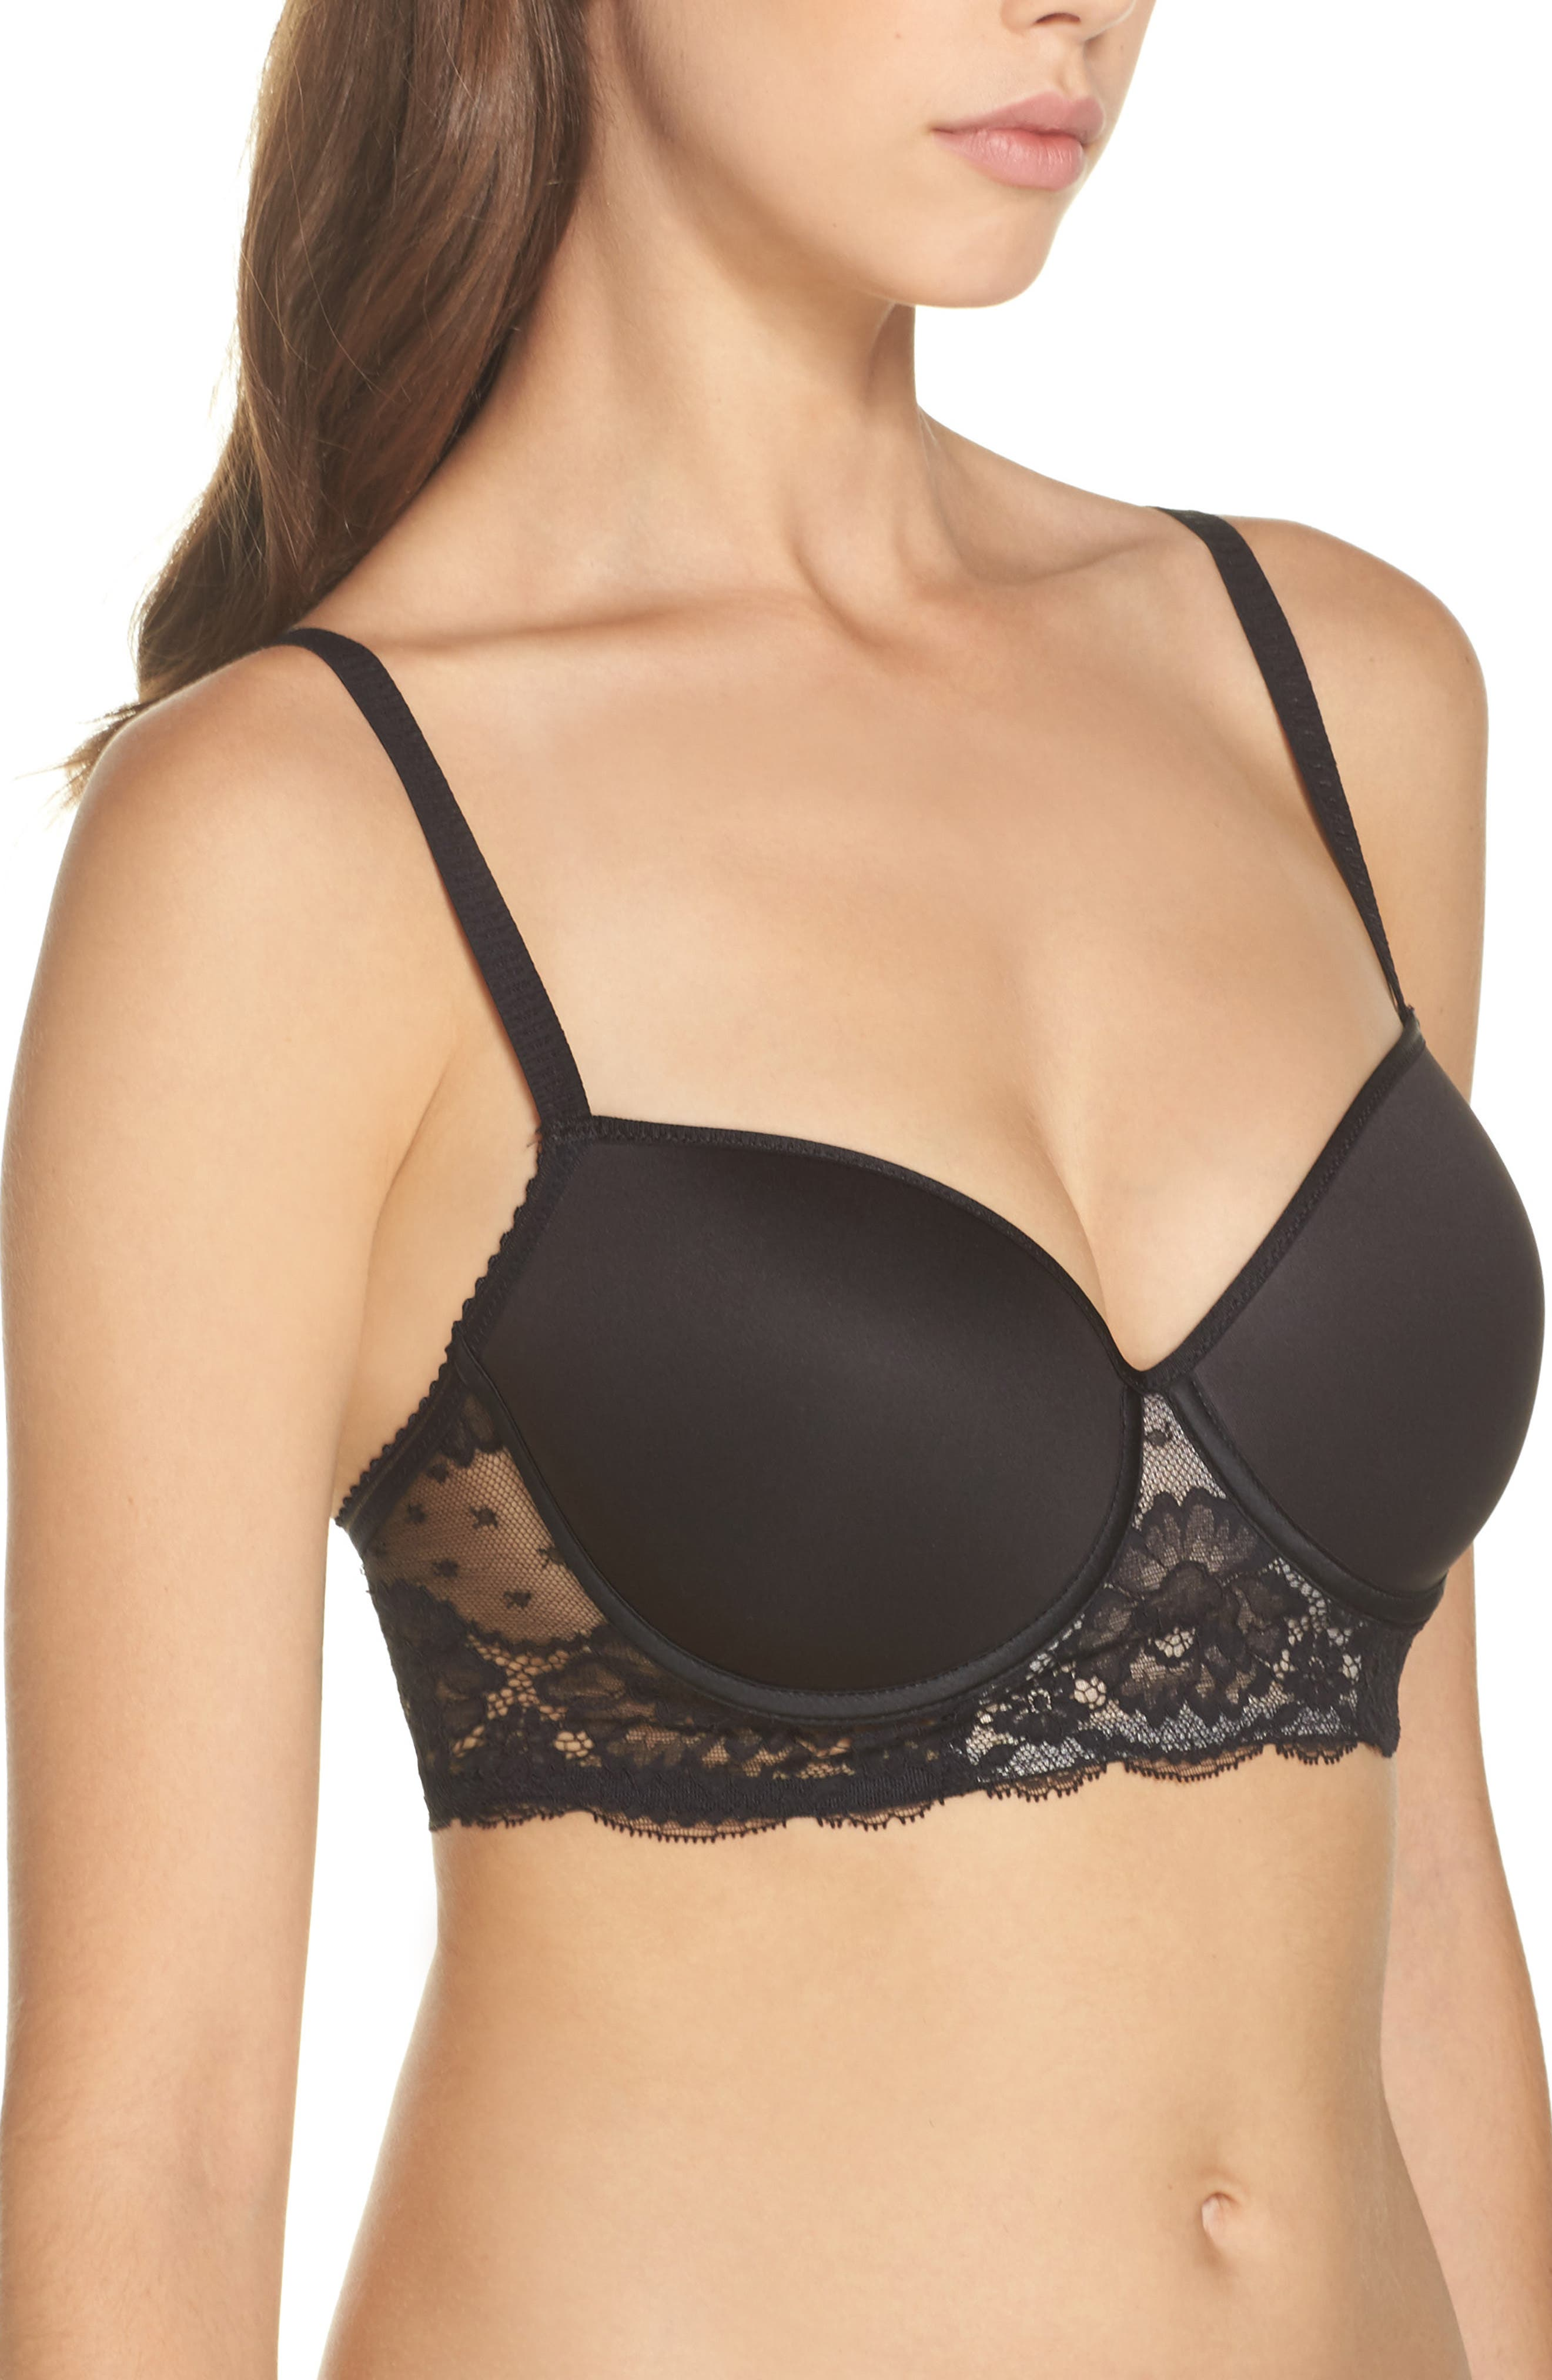 Underwire Eyelash Lace Bra,                             Alternate thumbnail 3, color,                             001